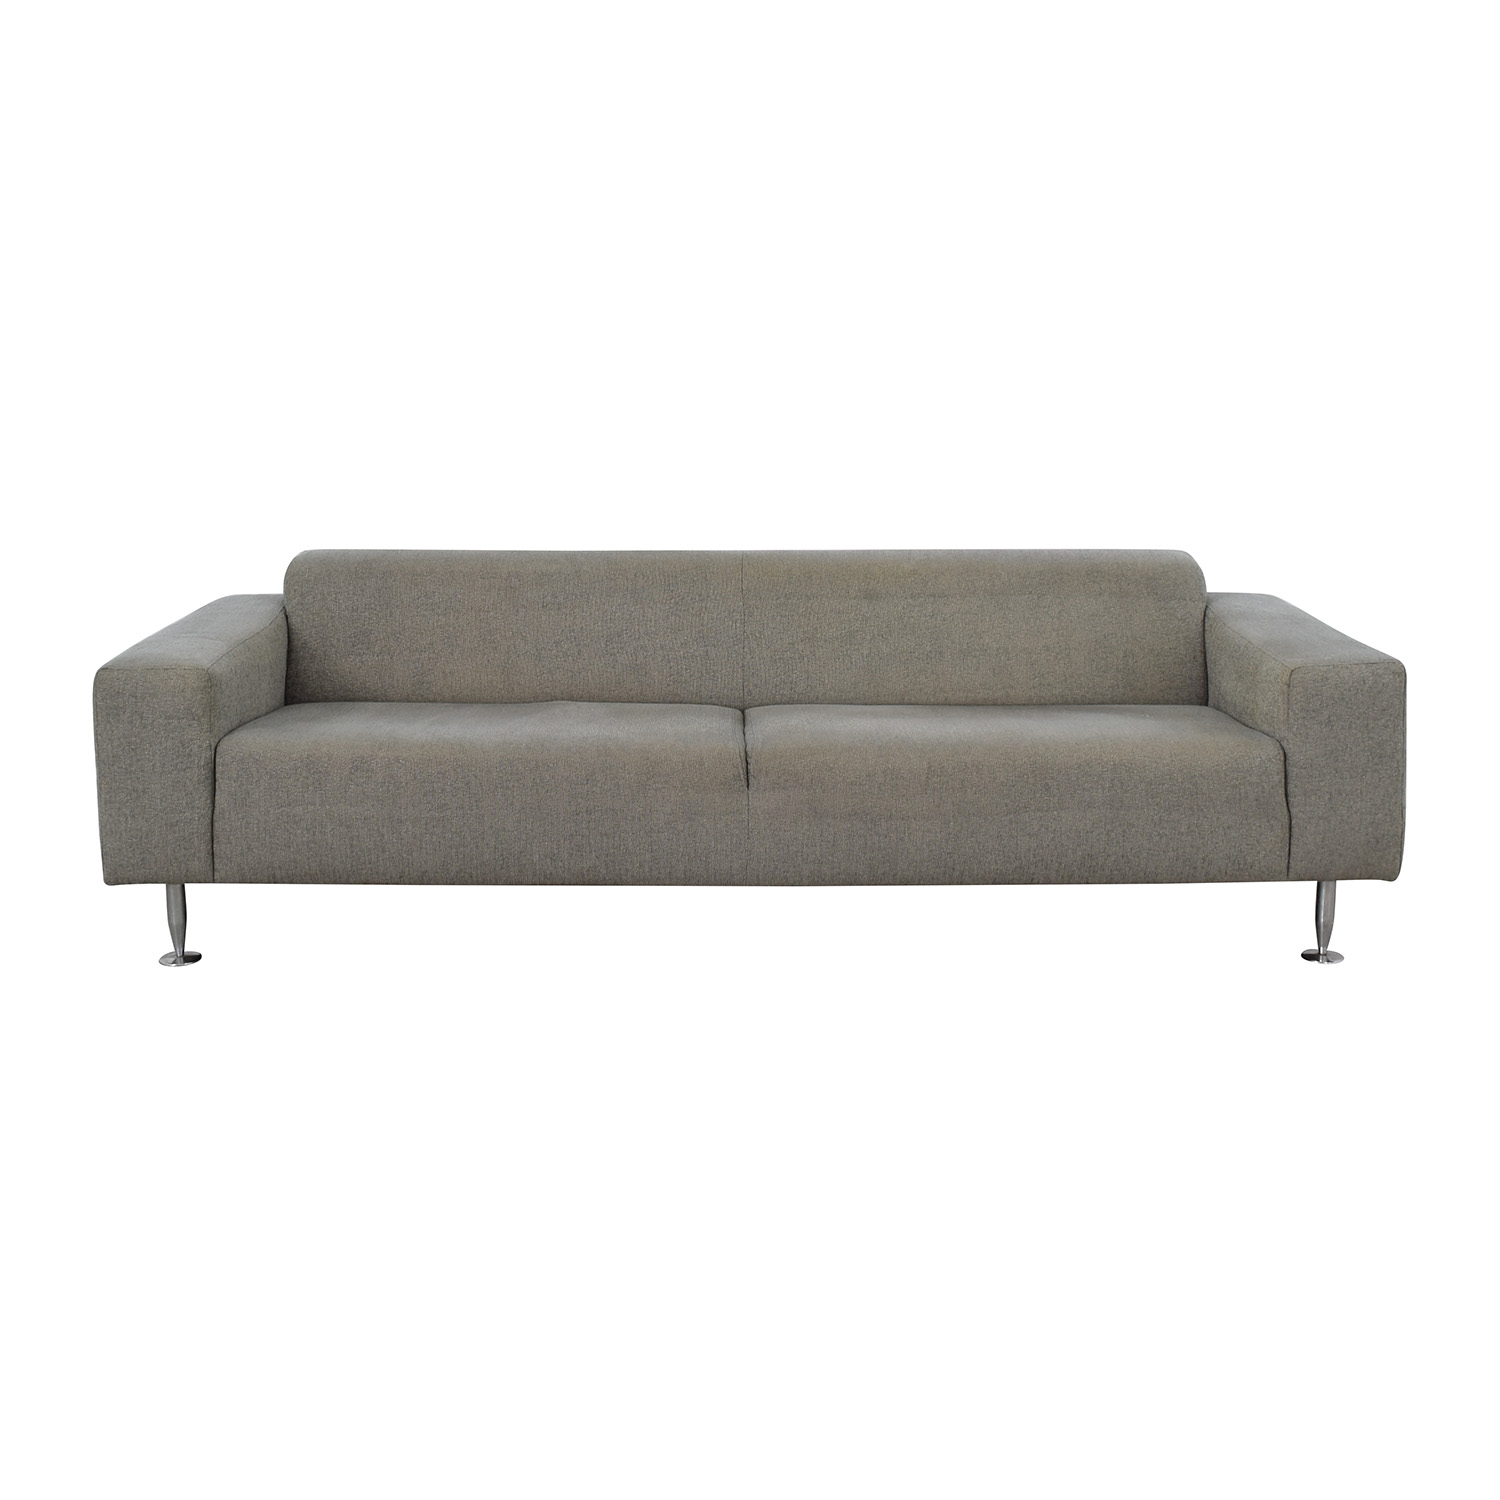 BoConcept BoConcept Grey Two-Cushion Sofa dimensions